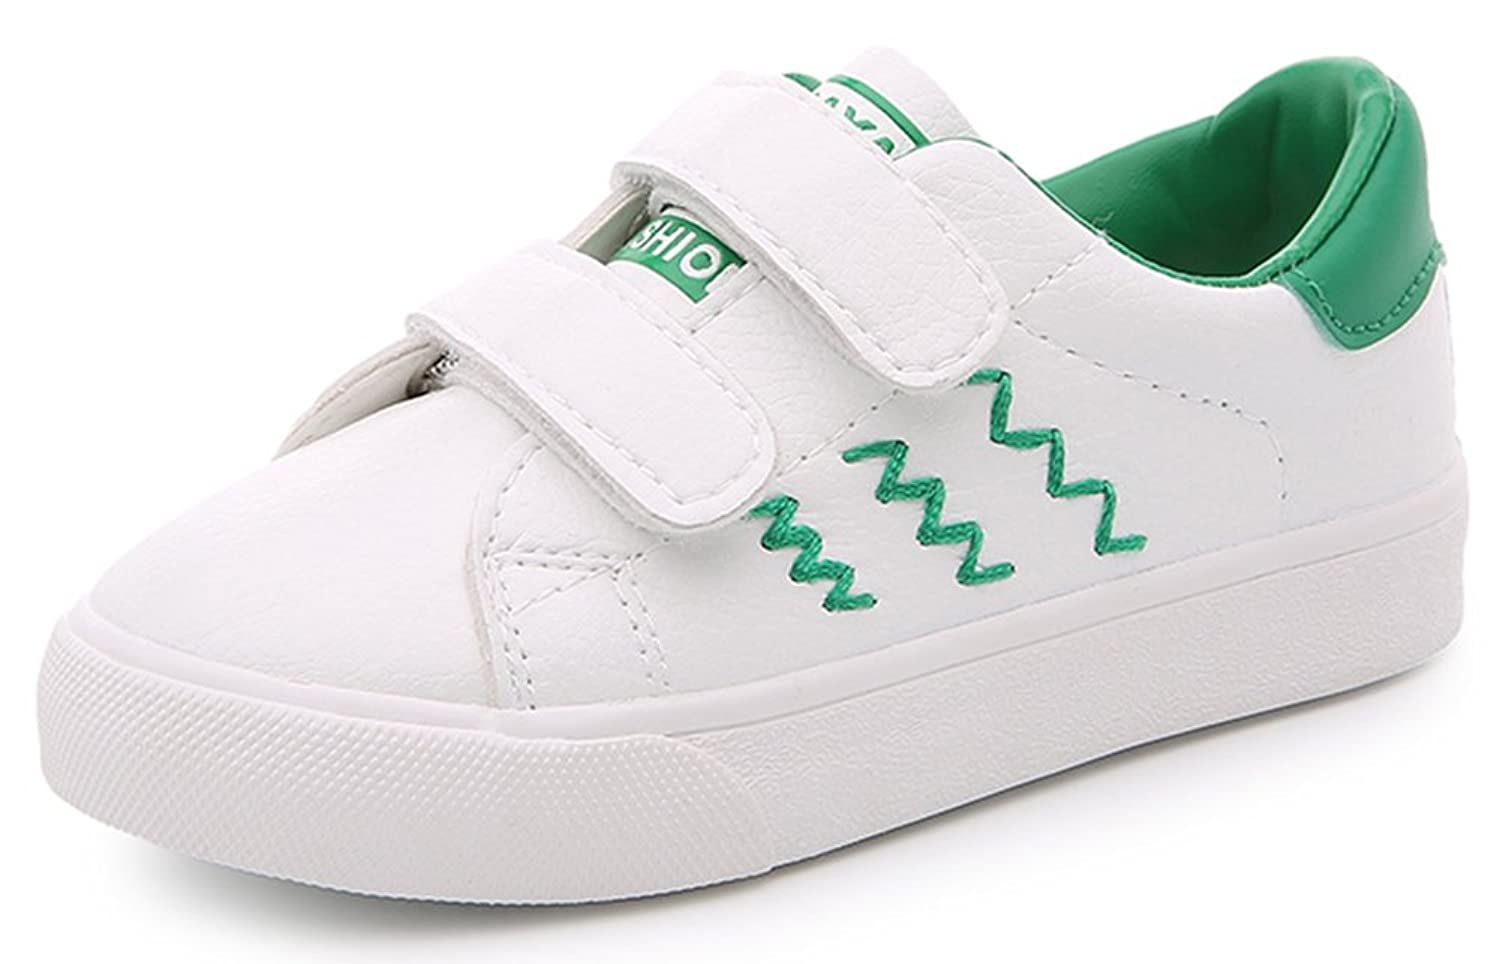 InStar Kid's Comfy Hook and Loop Sports Sneakers Shoes